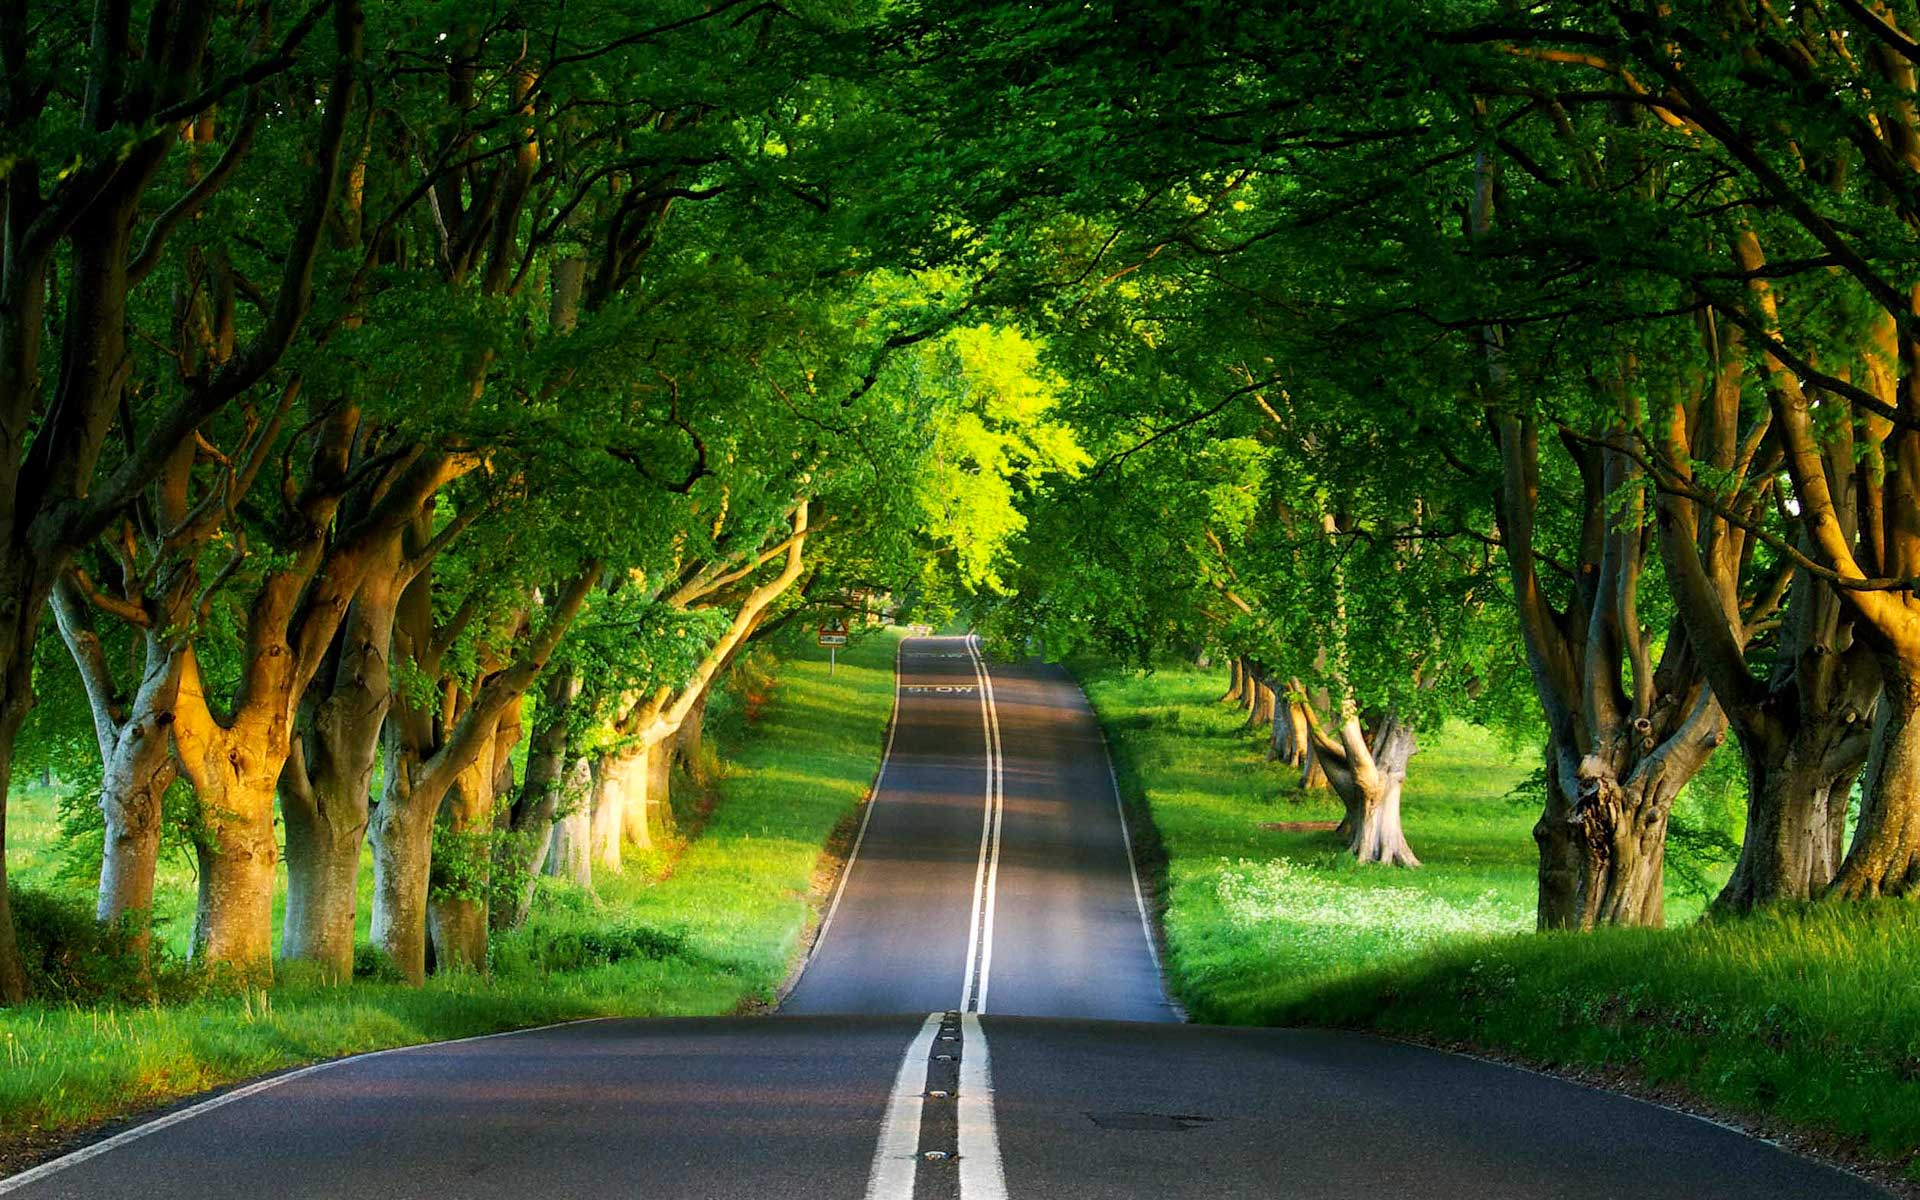 green-road-1920x1200-wallpaper-3774